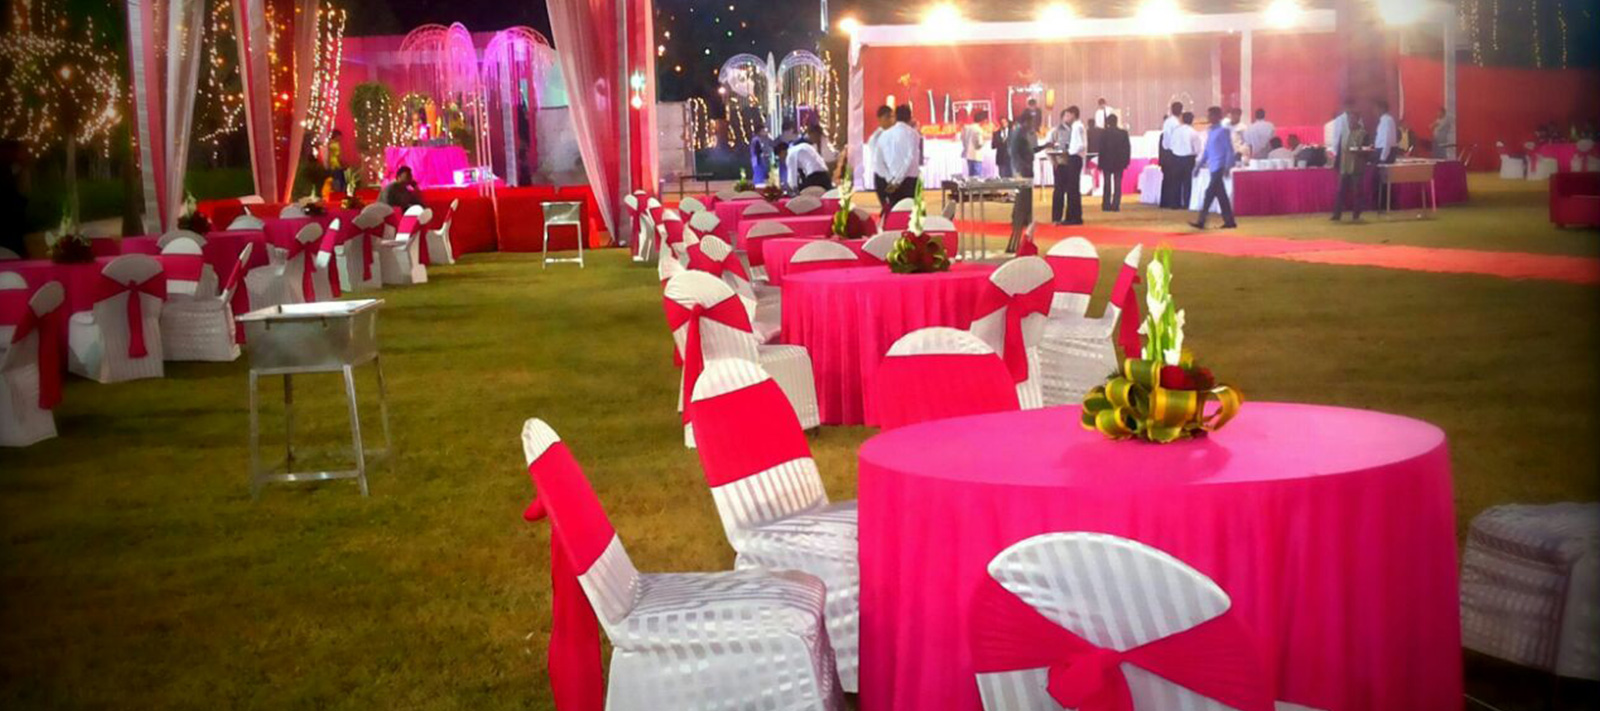 10 Best Event Management Companies in Gurgaon, Gurugram